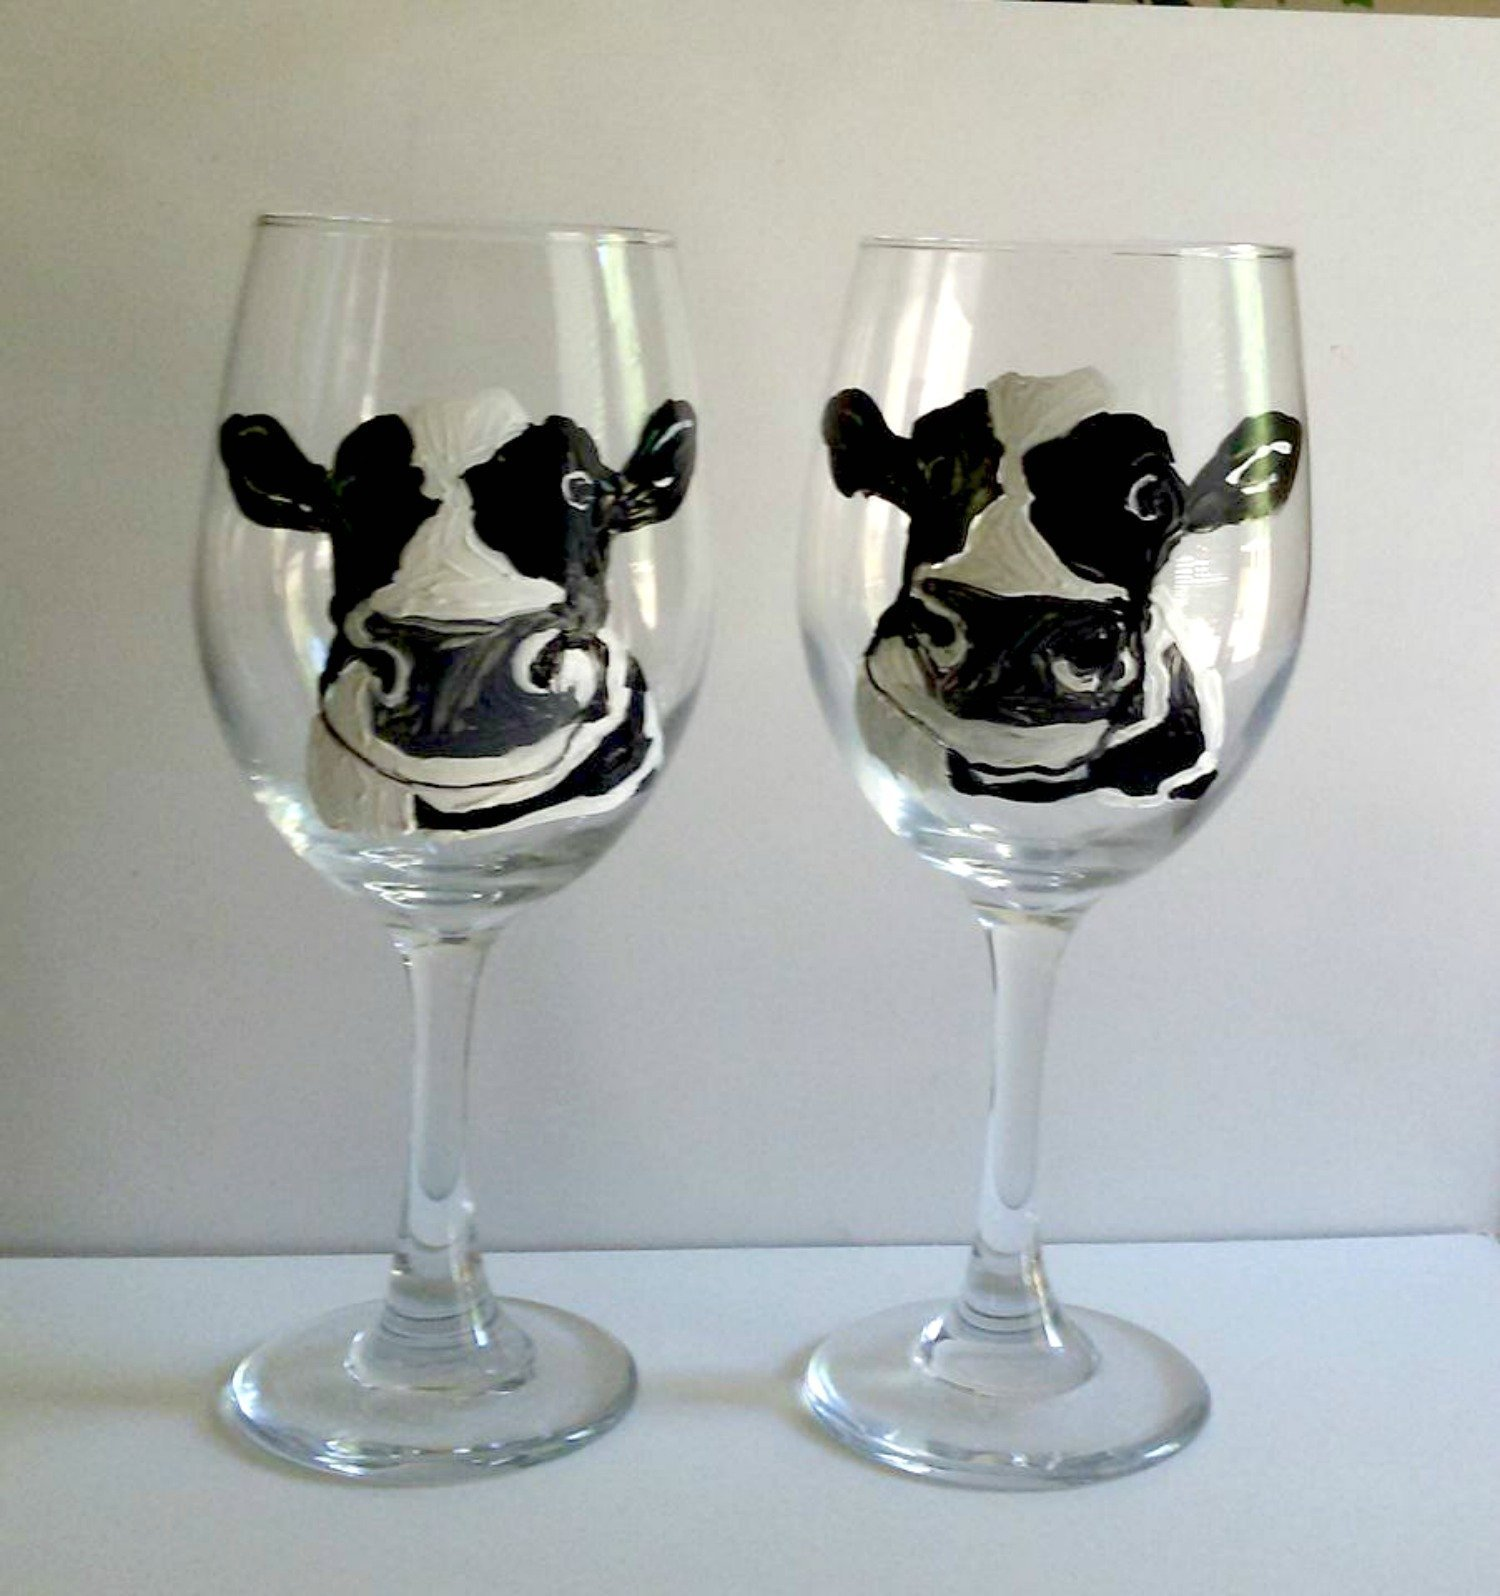 Dairy Cow Hand Painted 20 oz Stemmed Wine Glasses (Set of 2) Kitchen Décor.